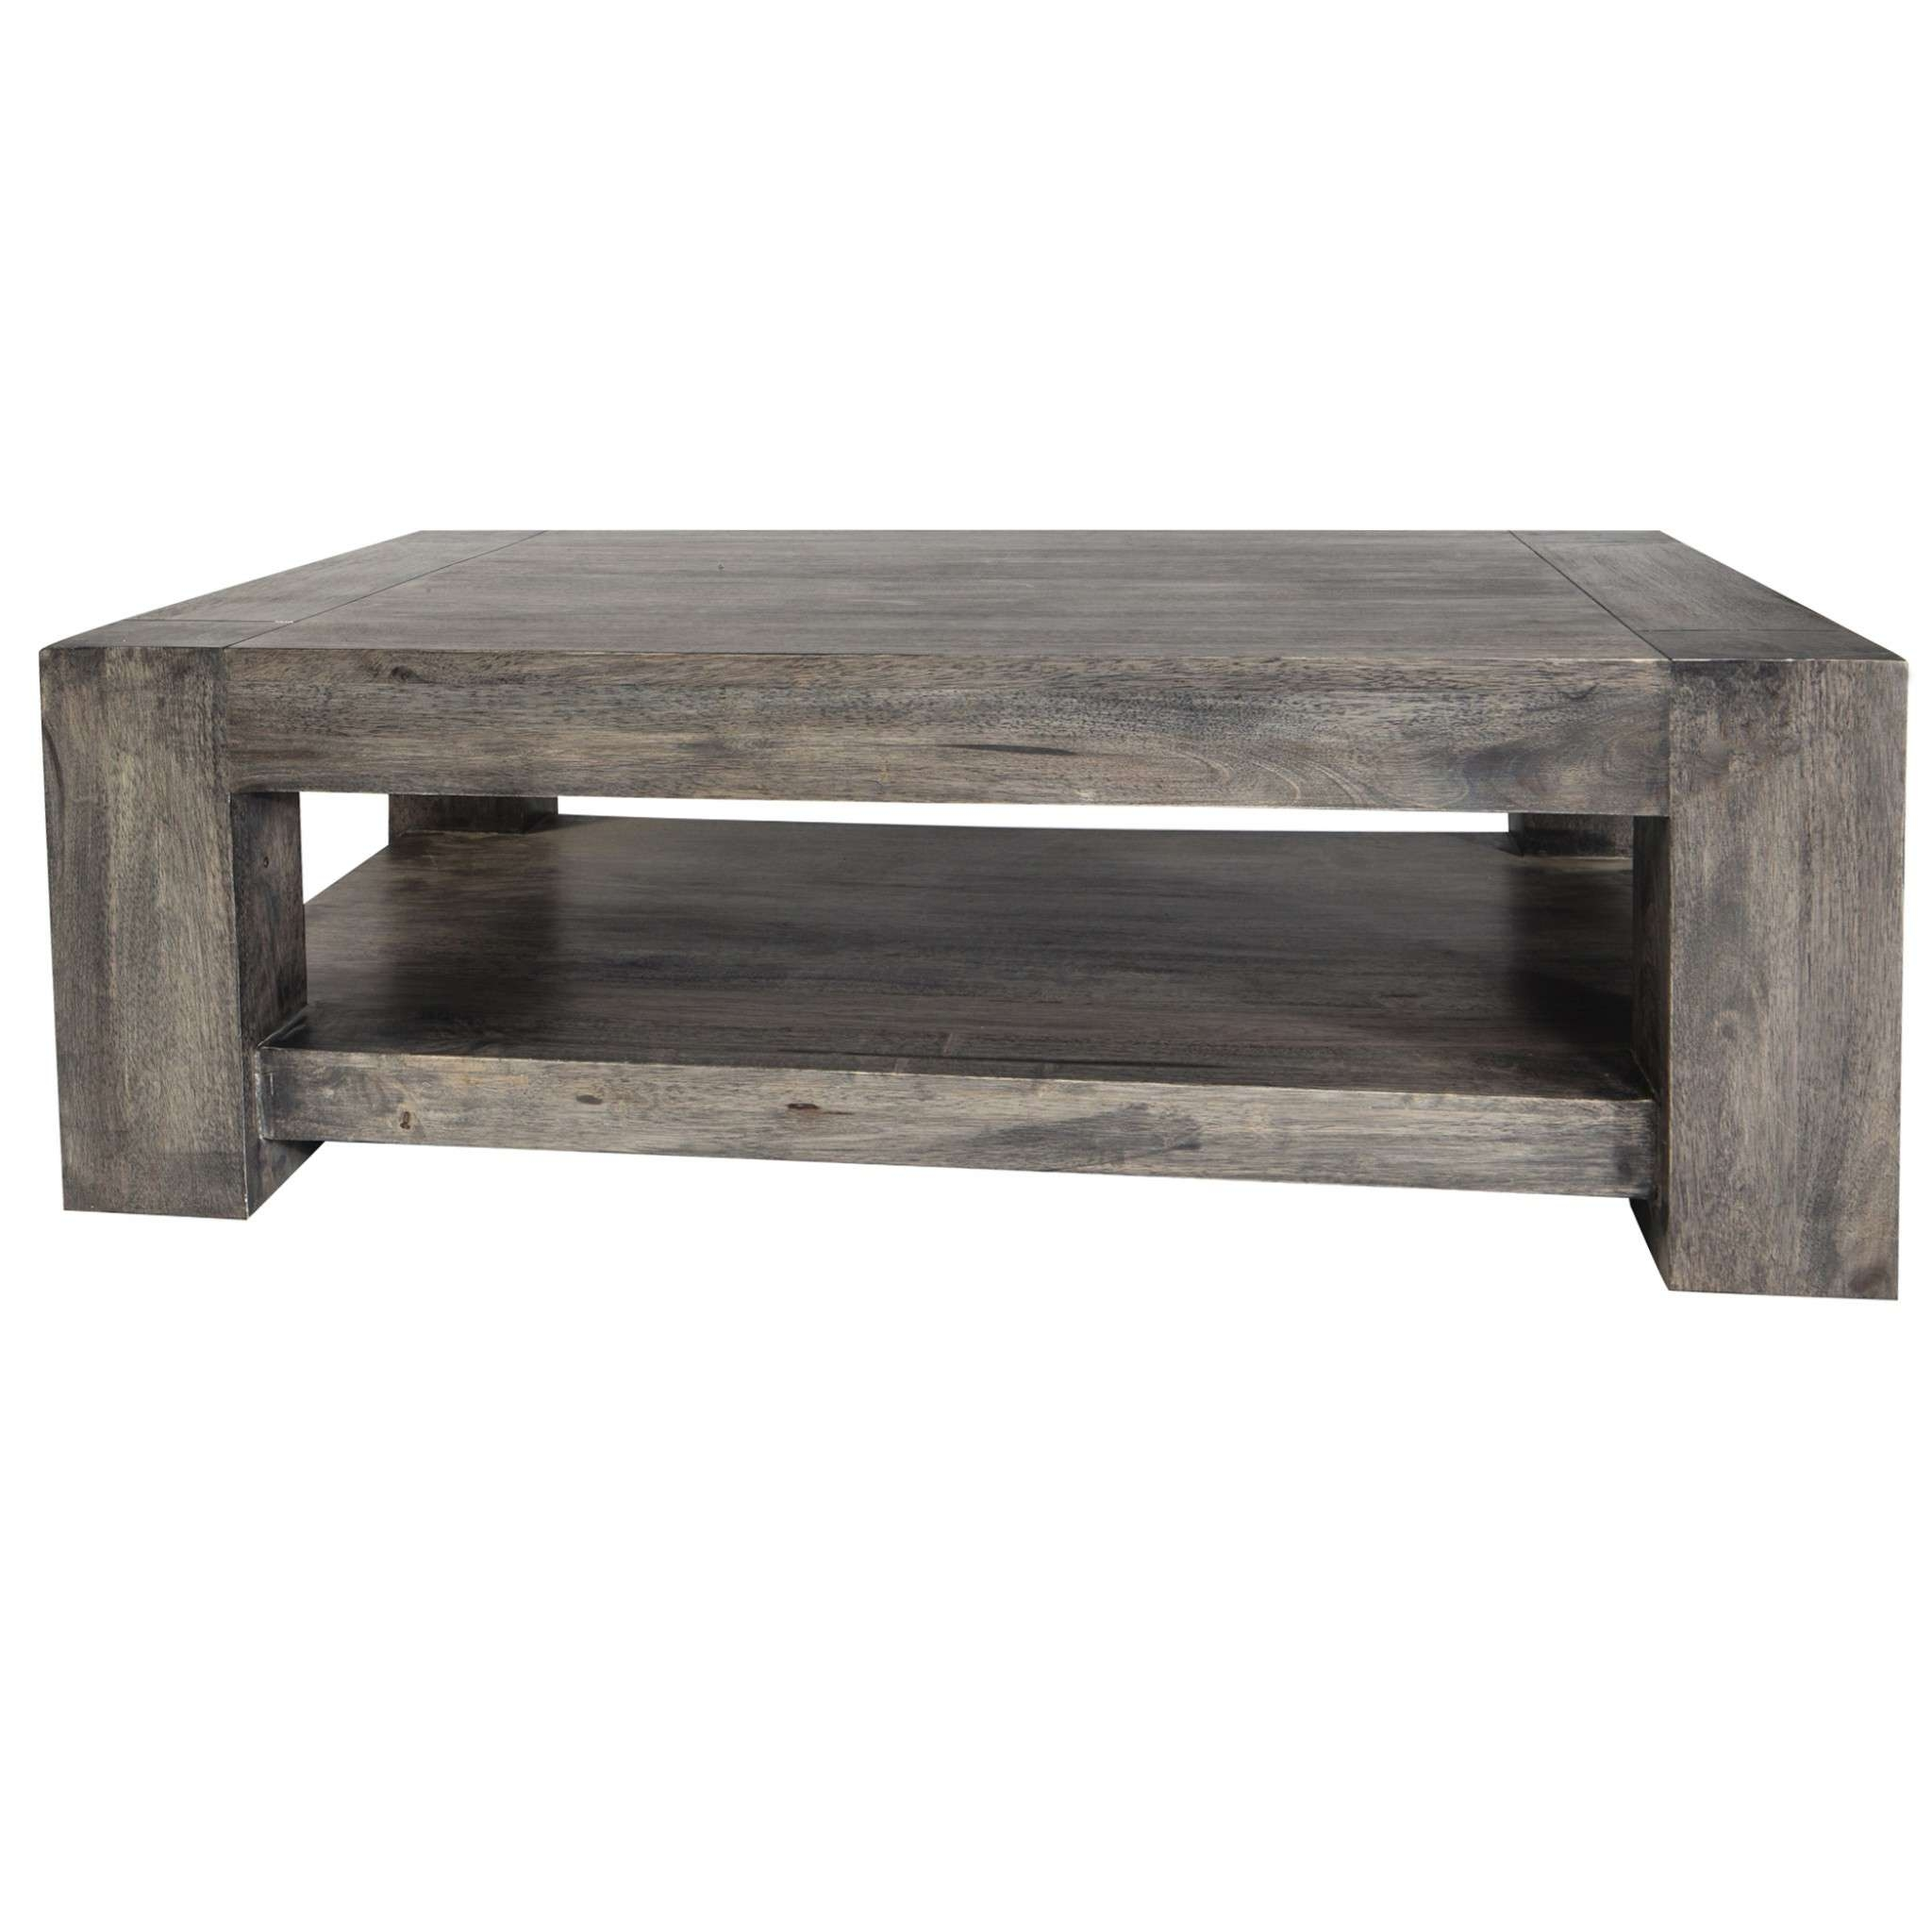 Coffee Table, Masculine Acacia Grey Coffee Table With A Shelf And For Well Known Gray Wood Coffee Tables (View 6 of 20)